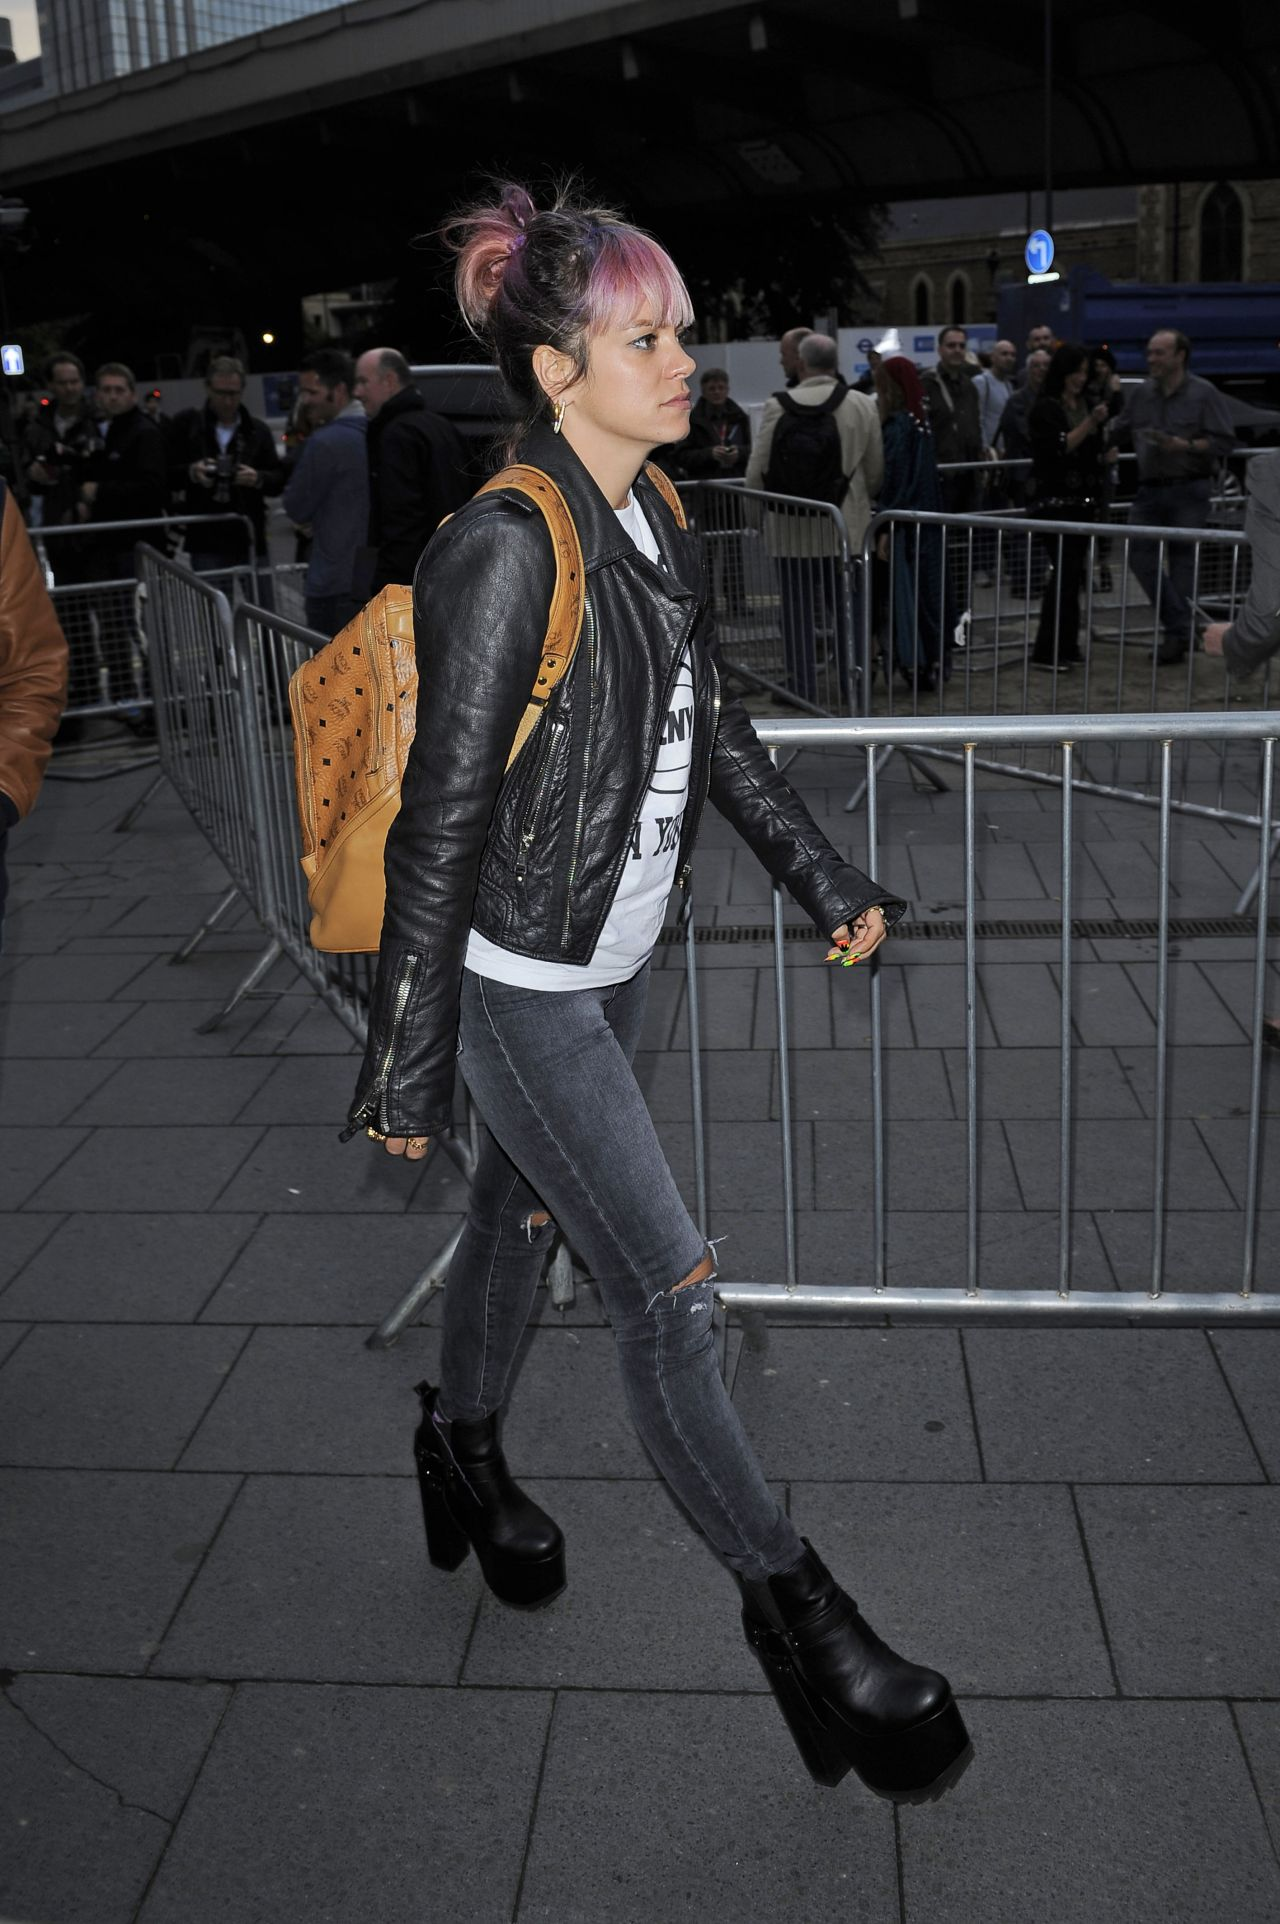 Lily Allen at Kate Bush Concert at Eventim Apollo in London